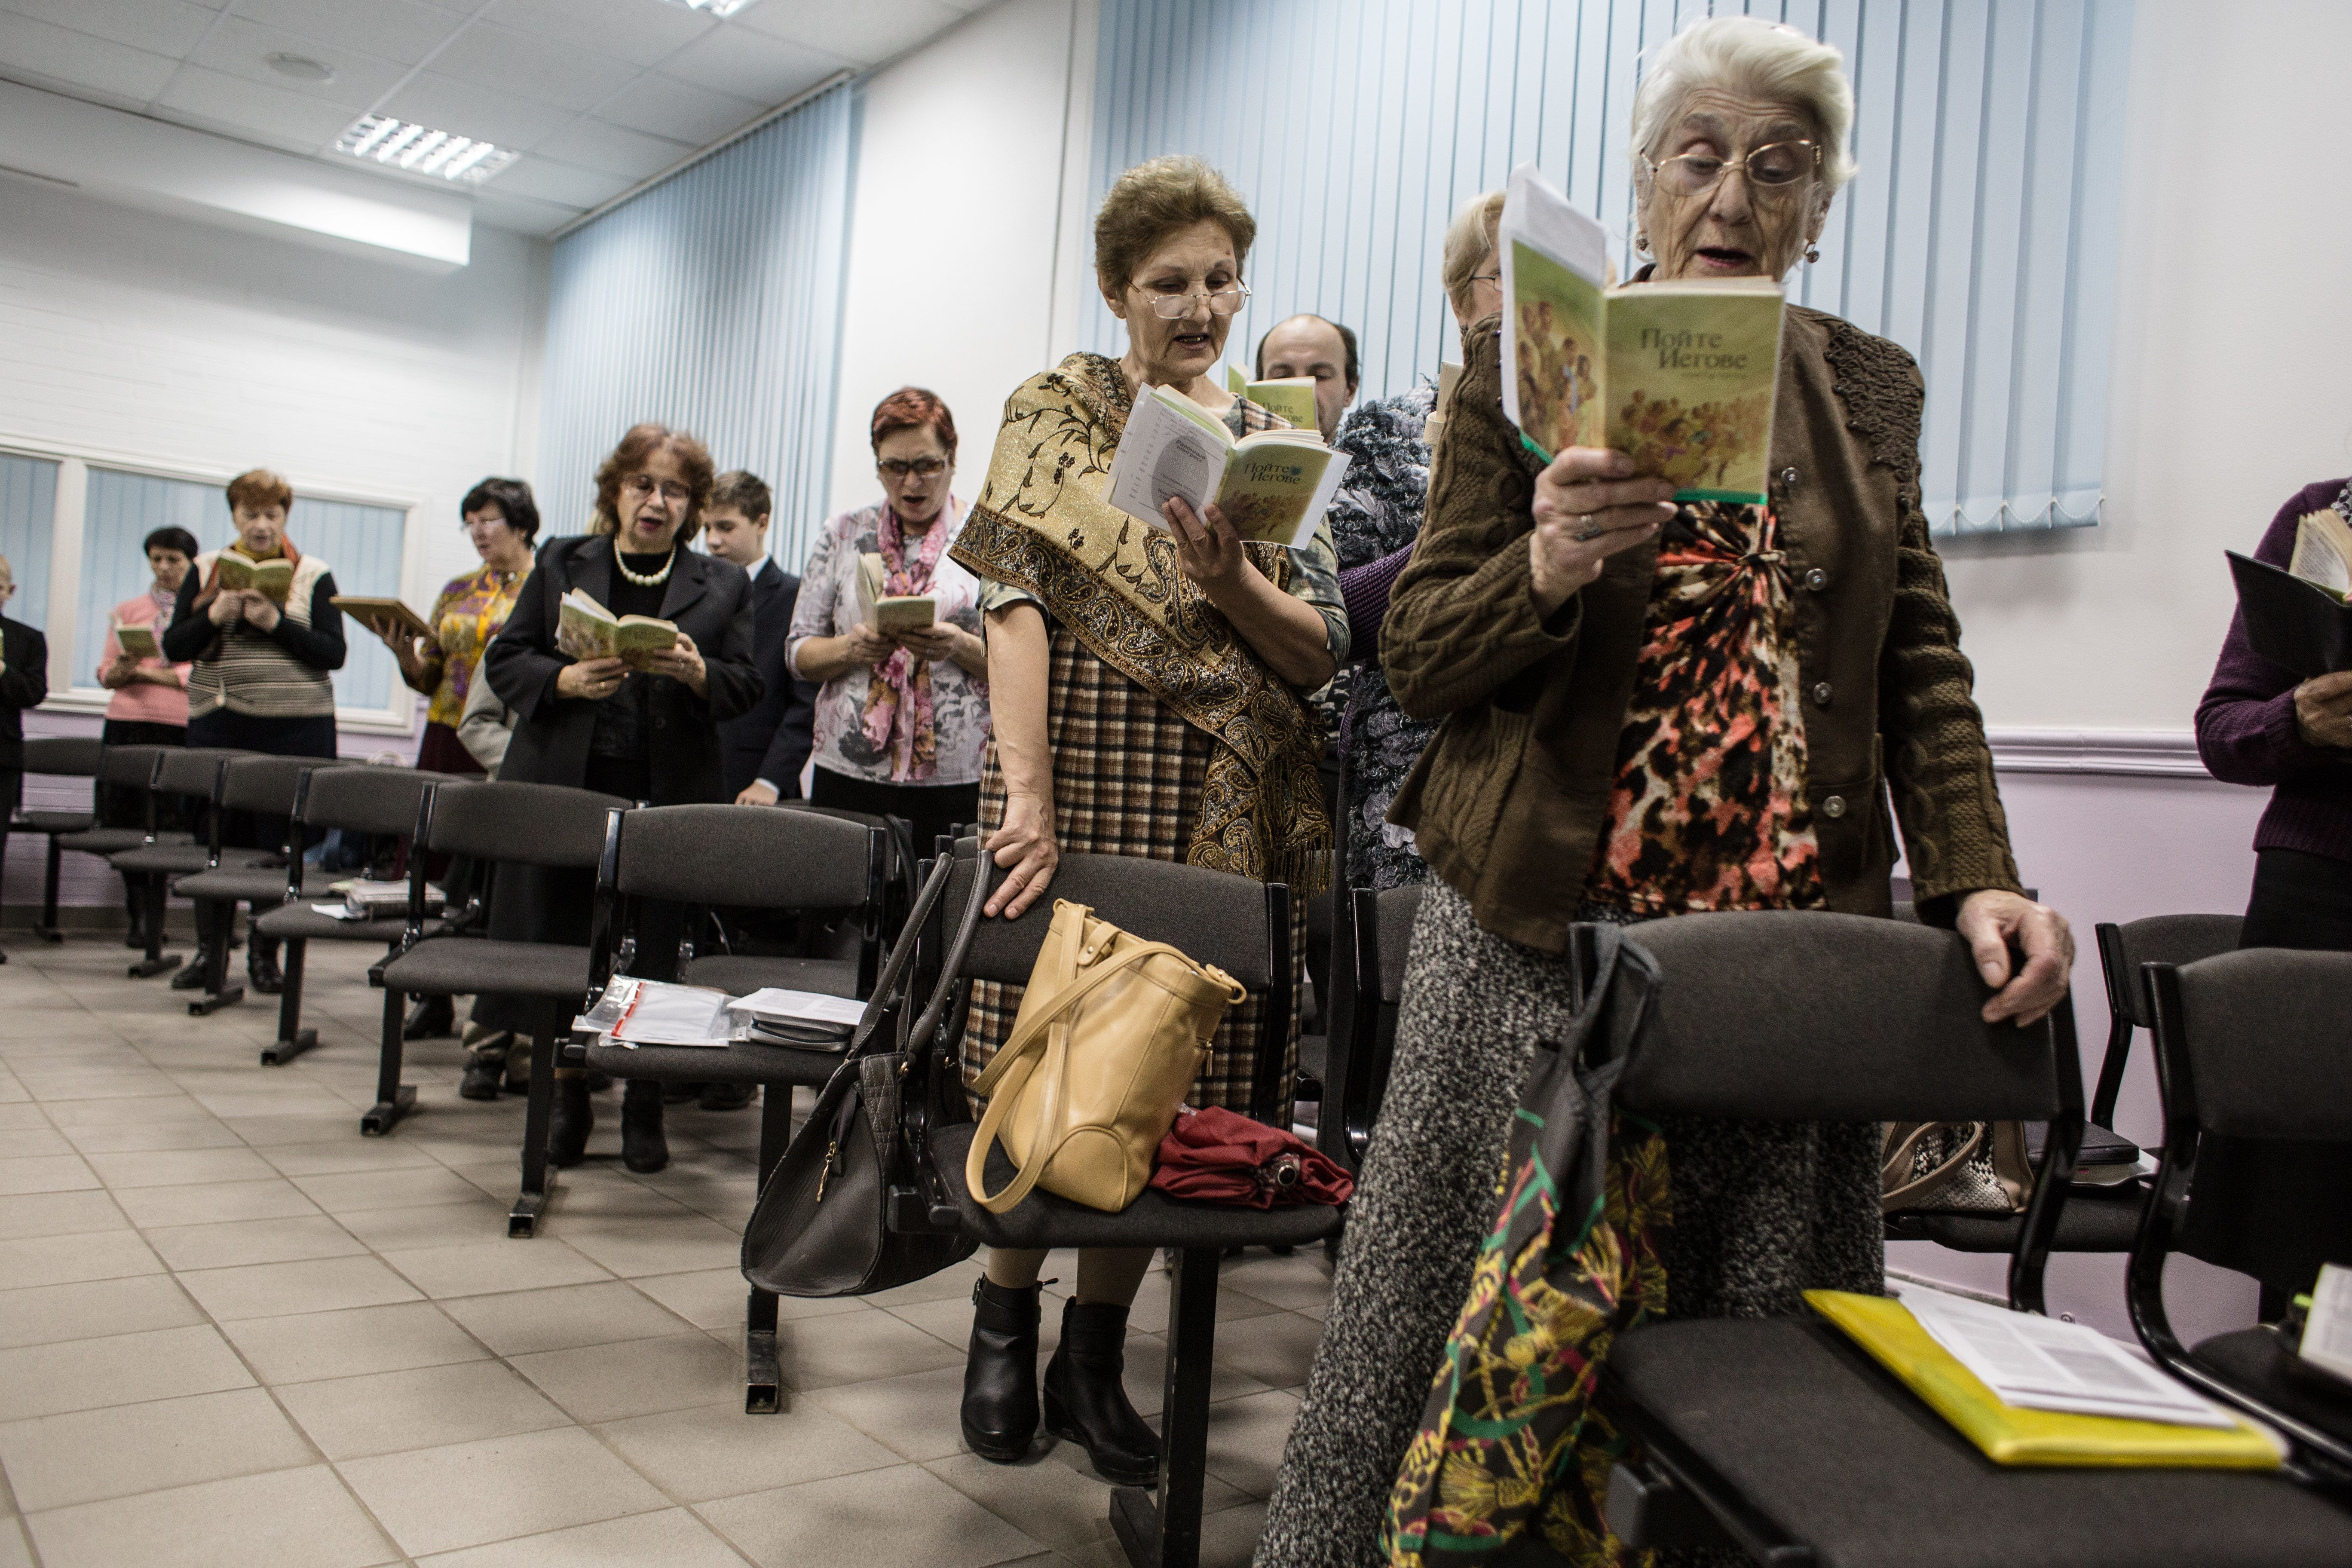 ROSTOV-ON-DON, RUSSIA - 13 November, 2015: Jehovah's witnesses sing songs during the meeting in Rostov-on-Don. Although Rostov-on-Don is only 80 km away from Taganrog, the organization is not banned there, and people are free to gather and hold meetings. 16 Jehovah's Witnesses are accused of extremist activity in Taganrog, Russia, 80 km away from Rostov-on-Don. (Photo by Alexander Aksakov/For The Washington Post via Getty Images).